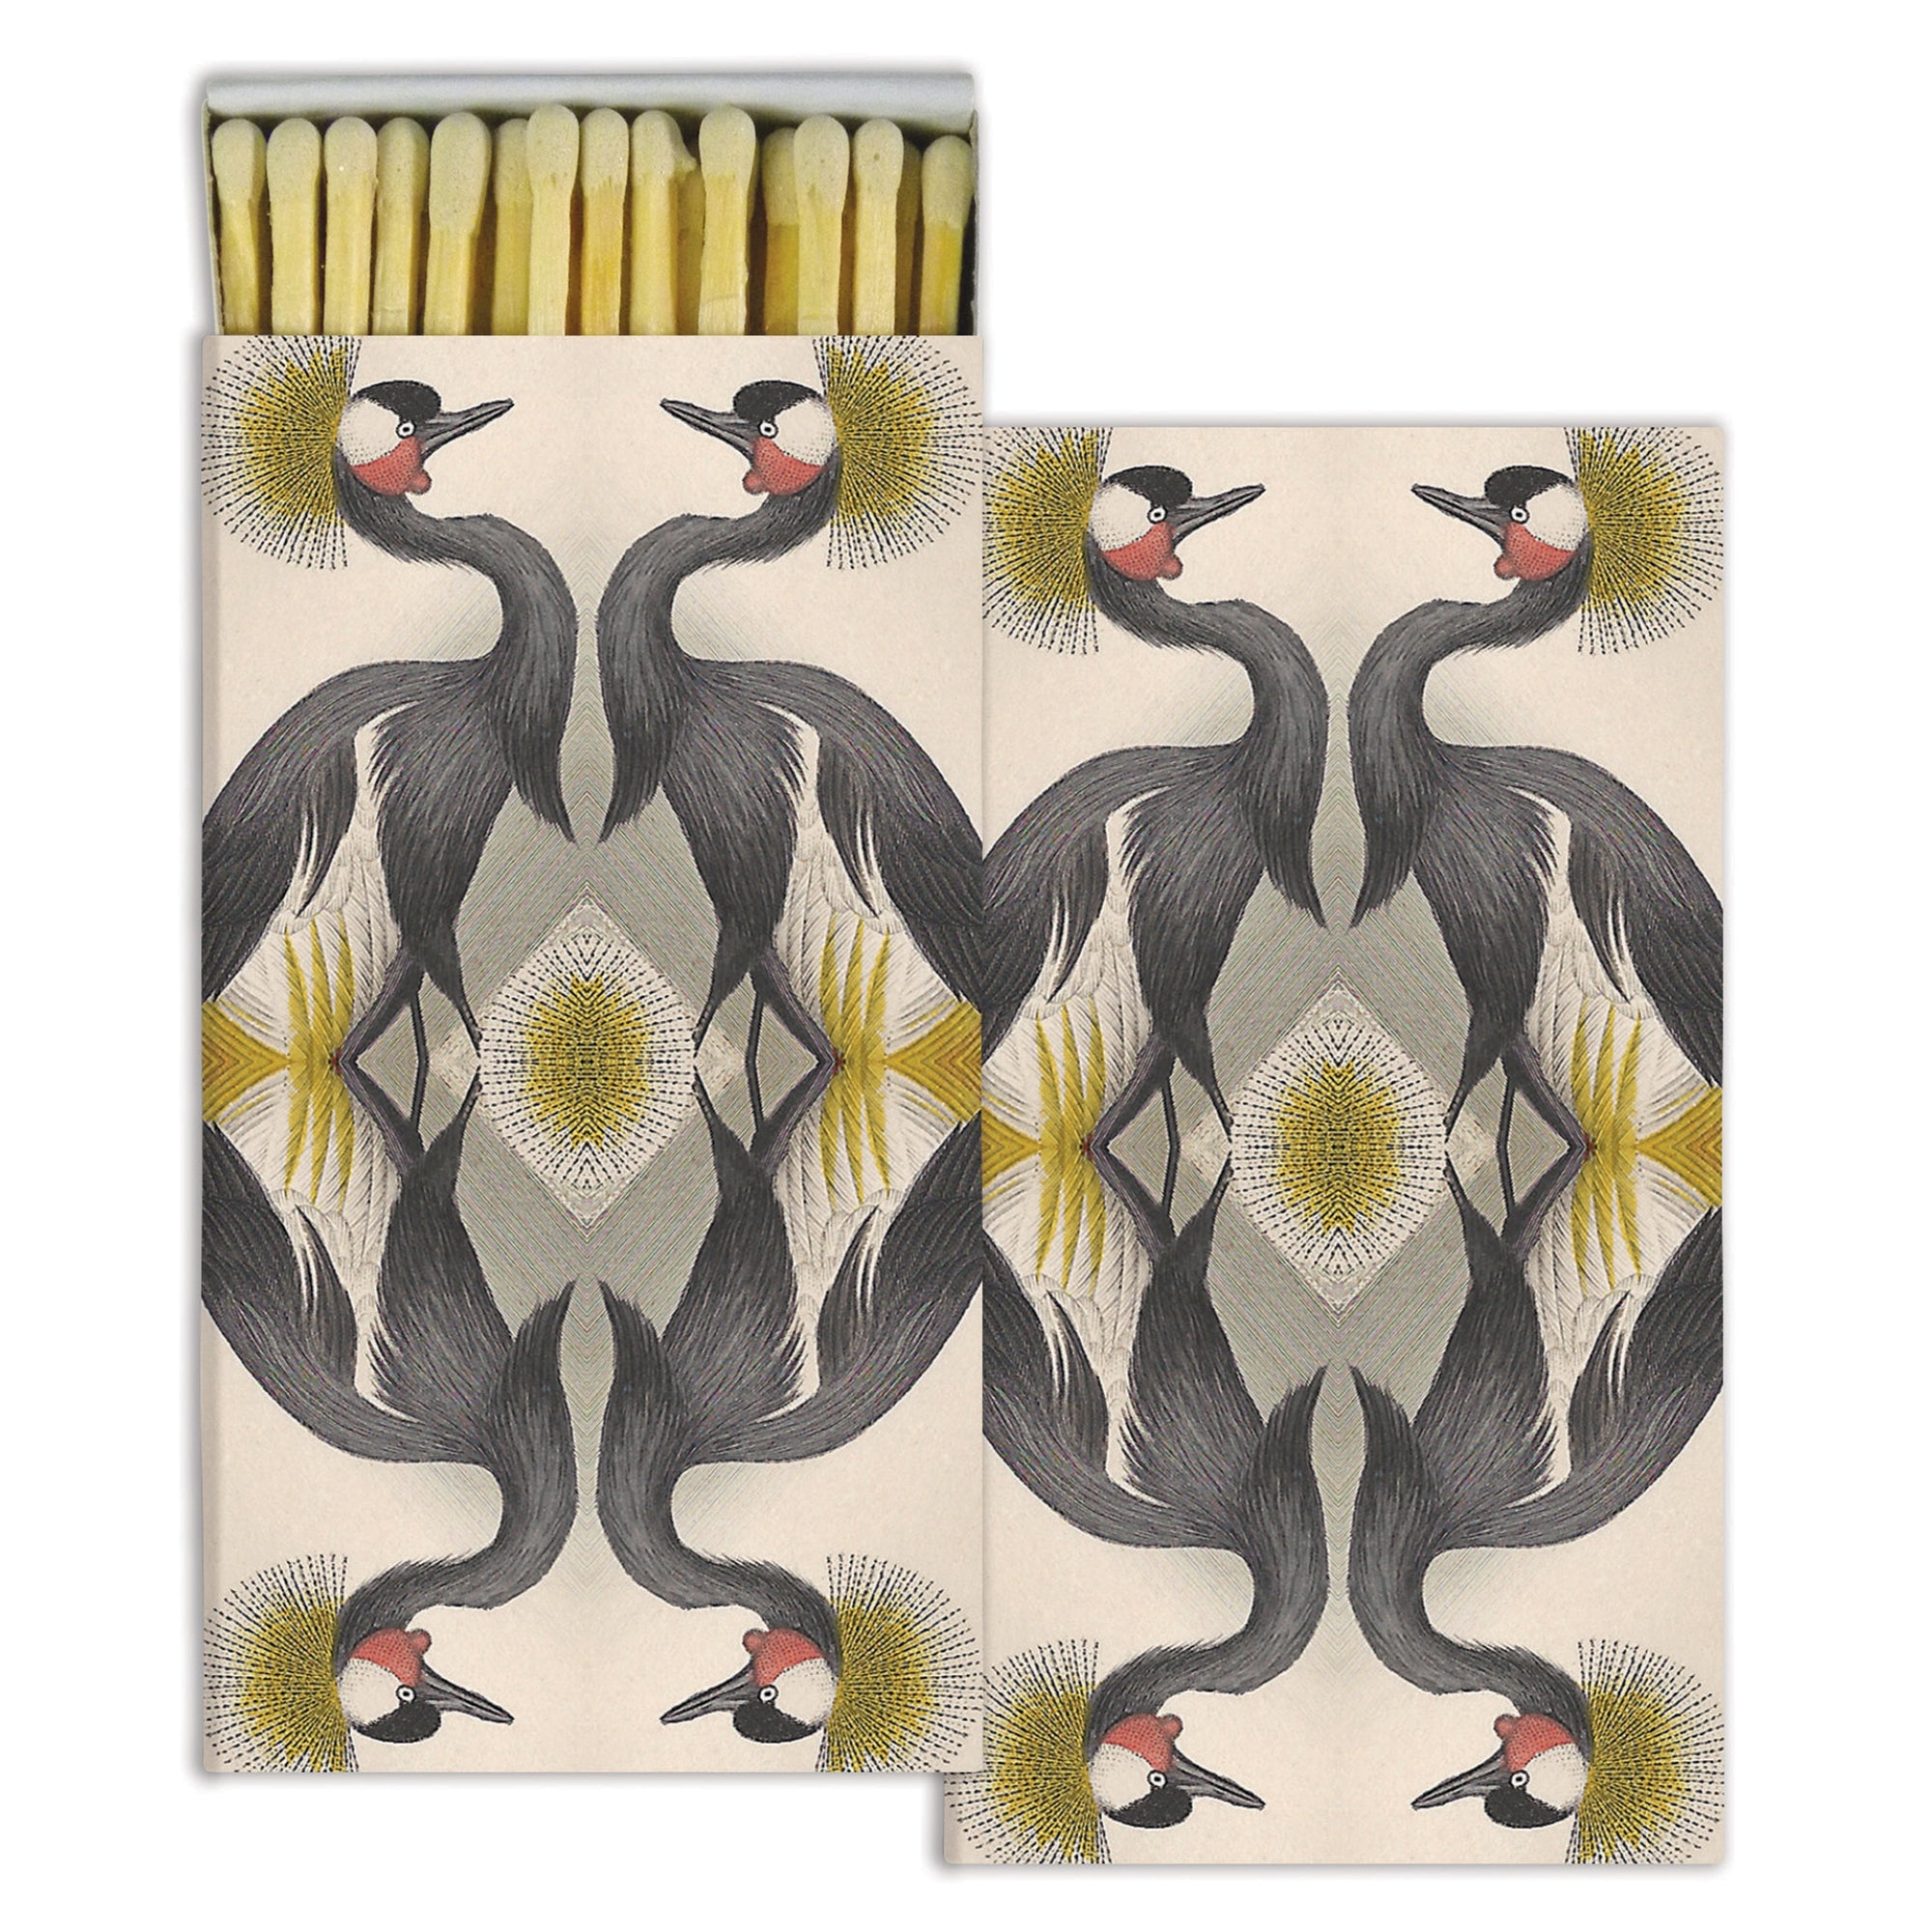 Matches - Crested Cranes